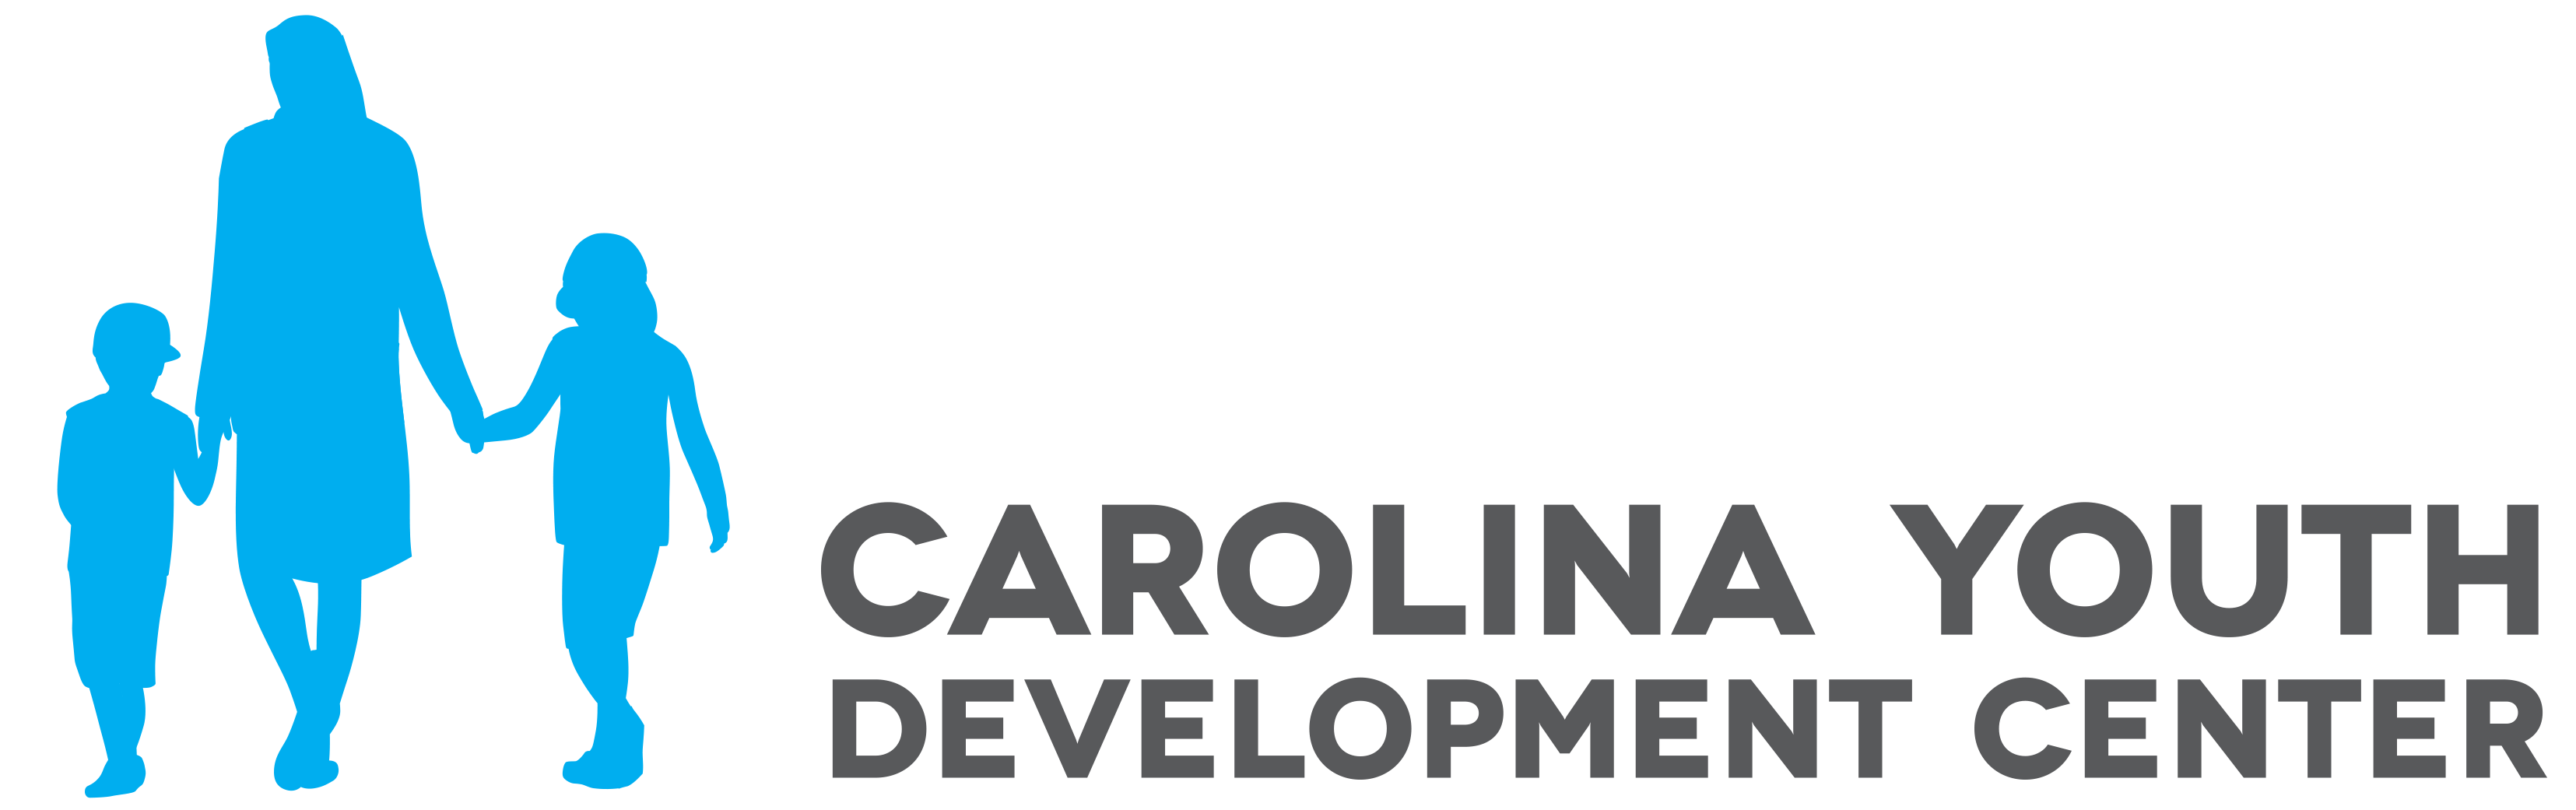 Carolina Youth Development Center